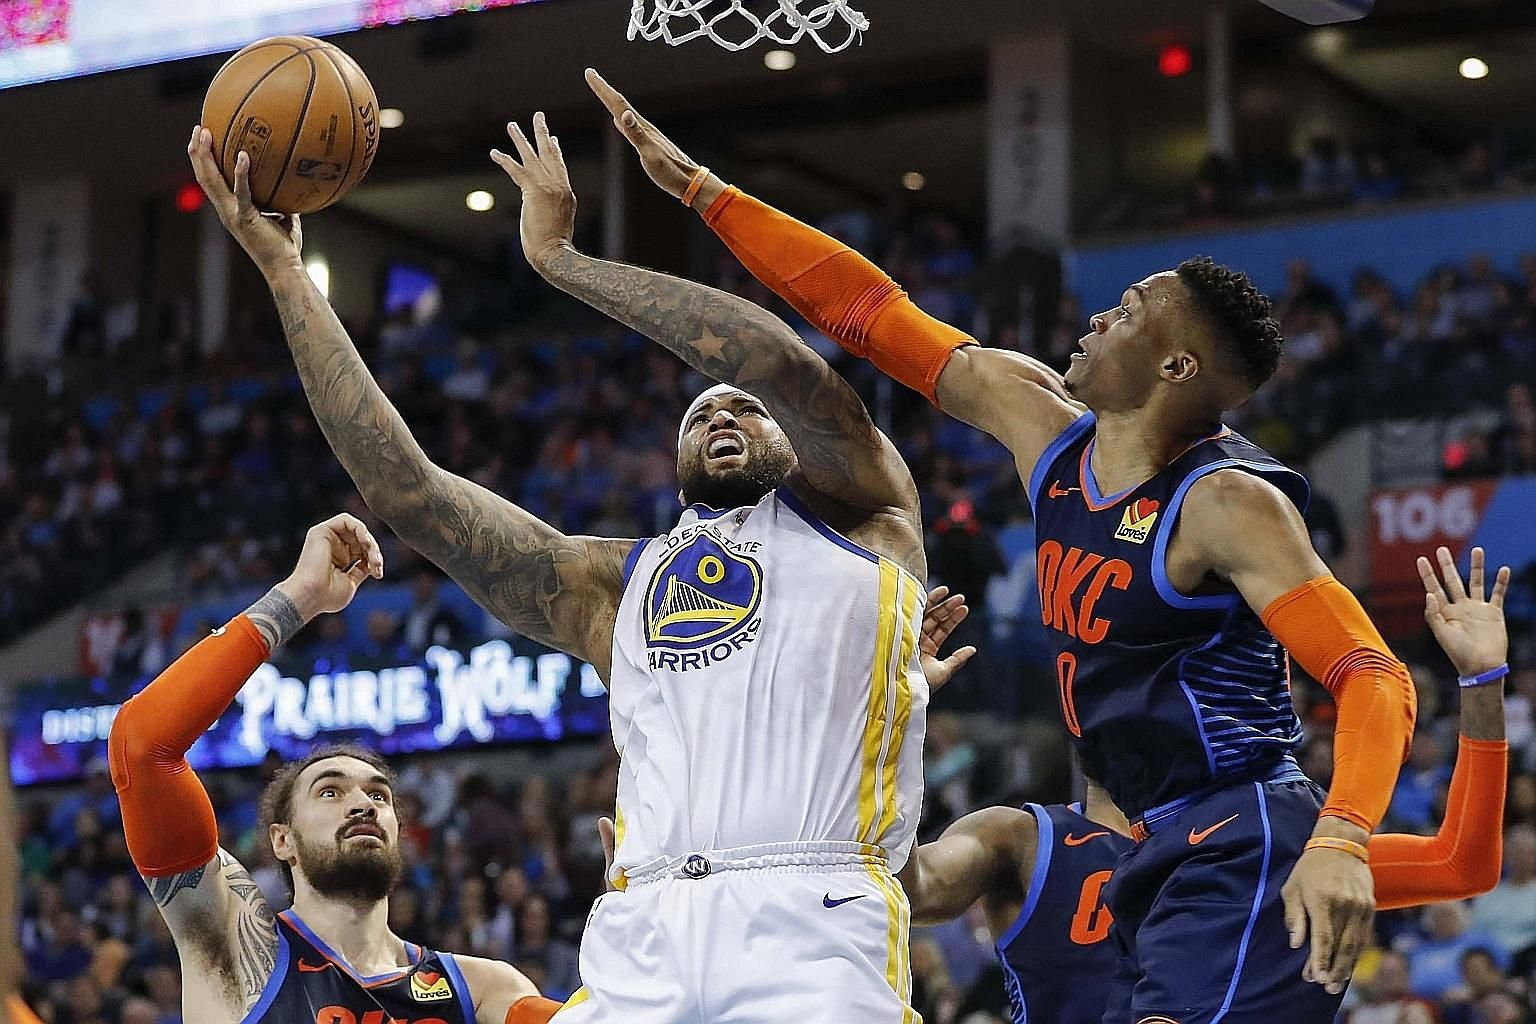 Golden State centre DeMarcus Cousins going up for a basket as Oklahoma City guard Russell Westbrook defended during the first half at the Chesapeake Energy Arena on Saturday. The Warriors won 110-88.